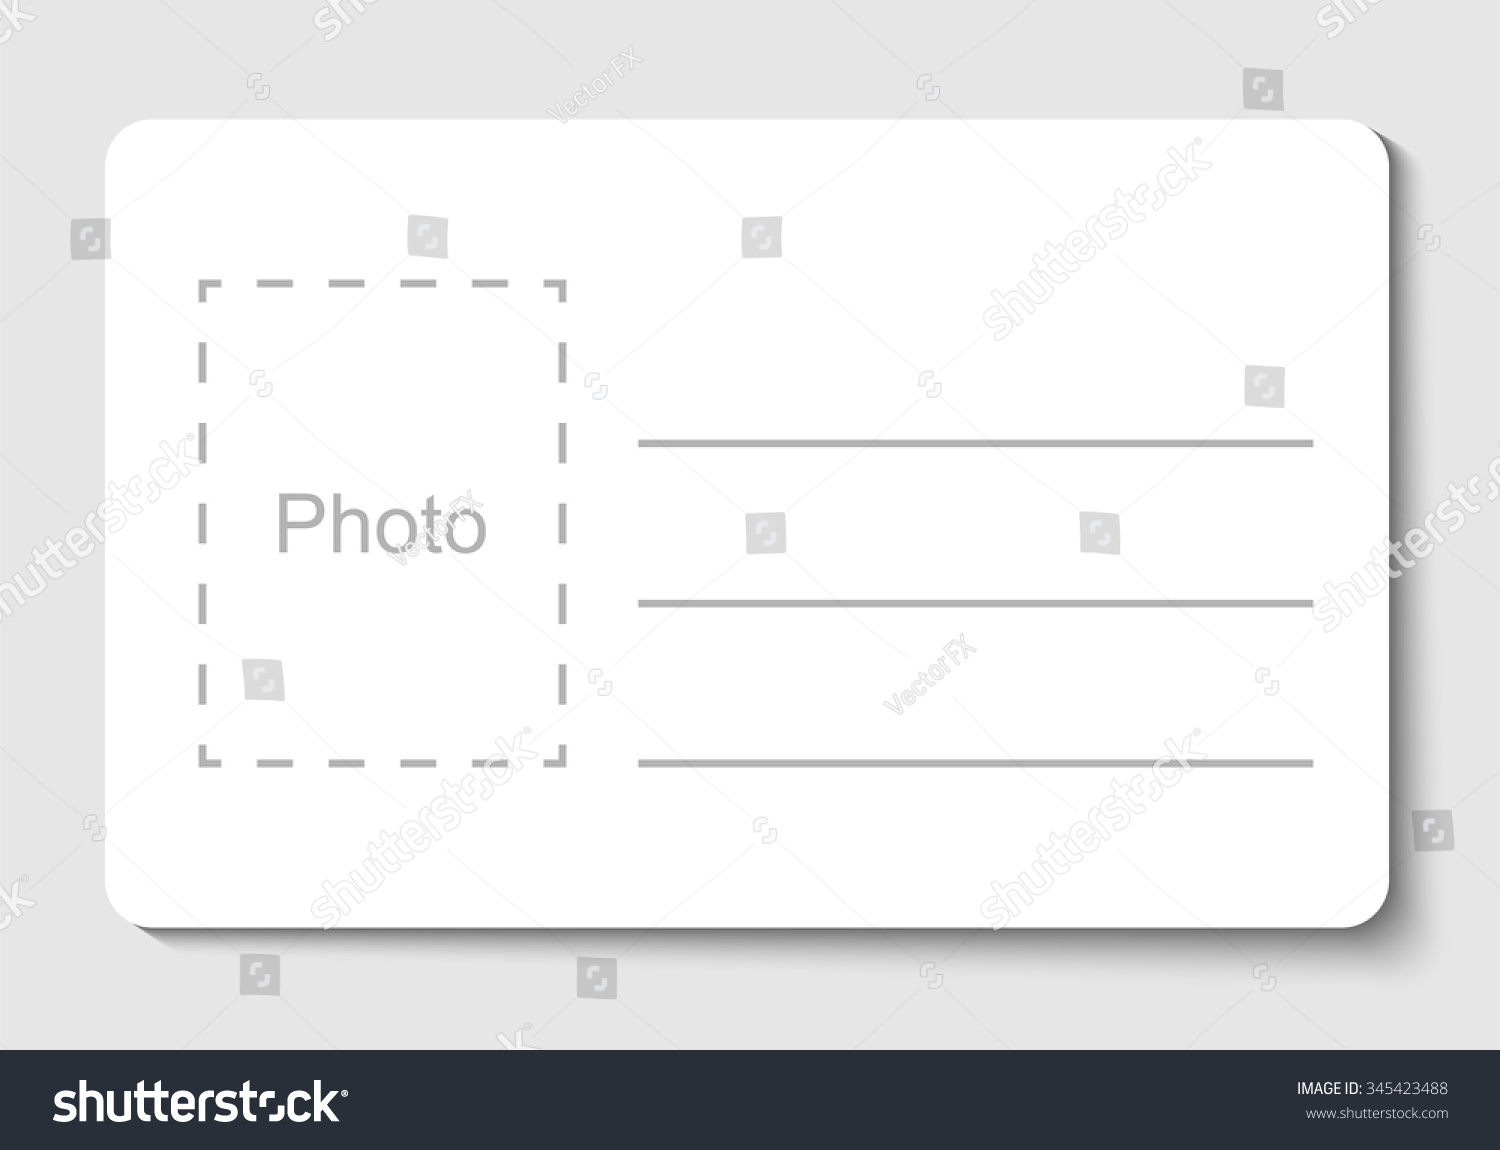 template for photo id card